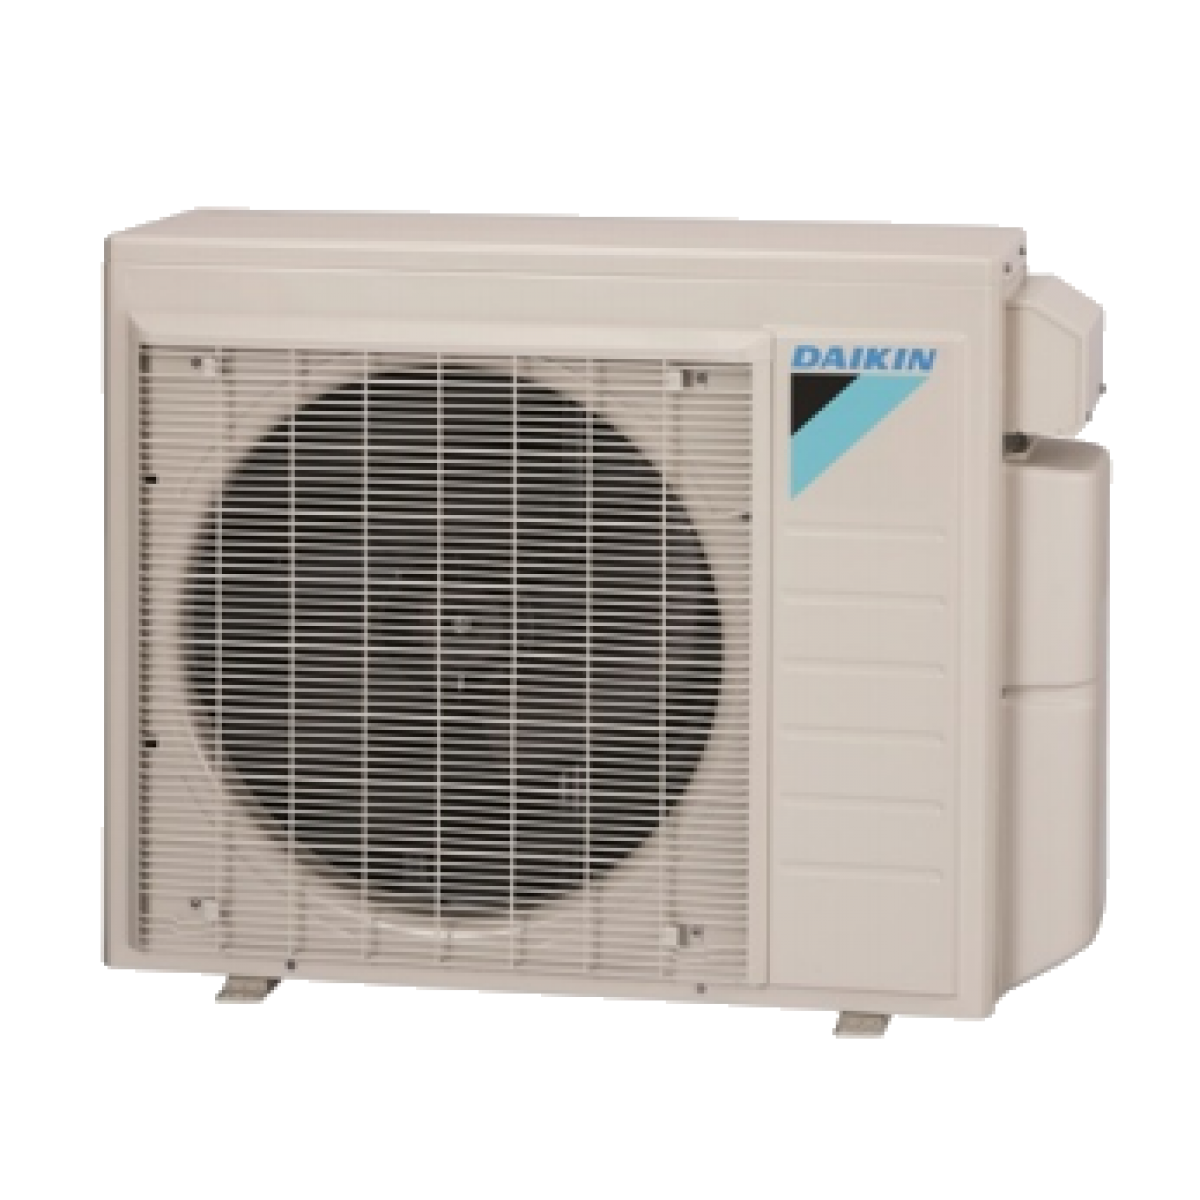 Daikin 2 zone 18k btu 18 seer heat pump condenser for Ductless ac